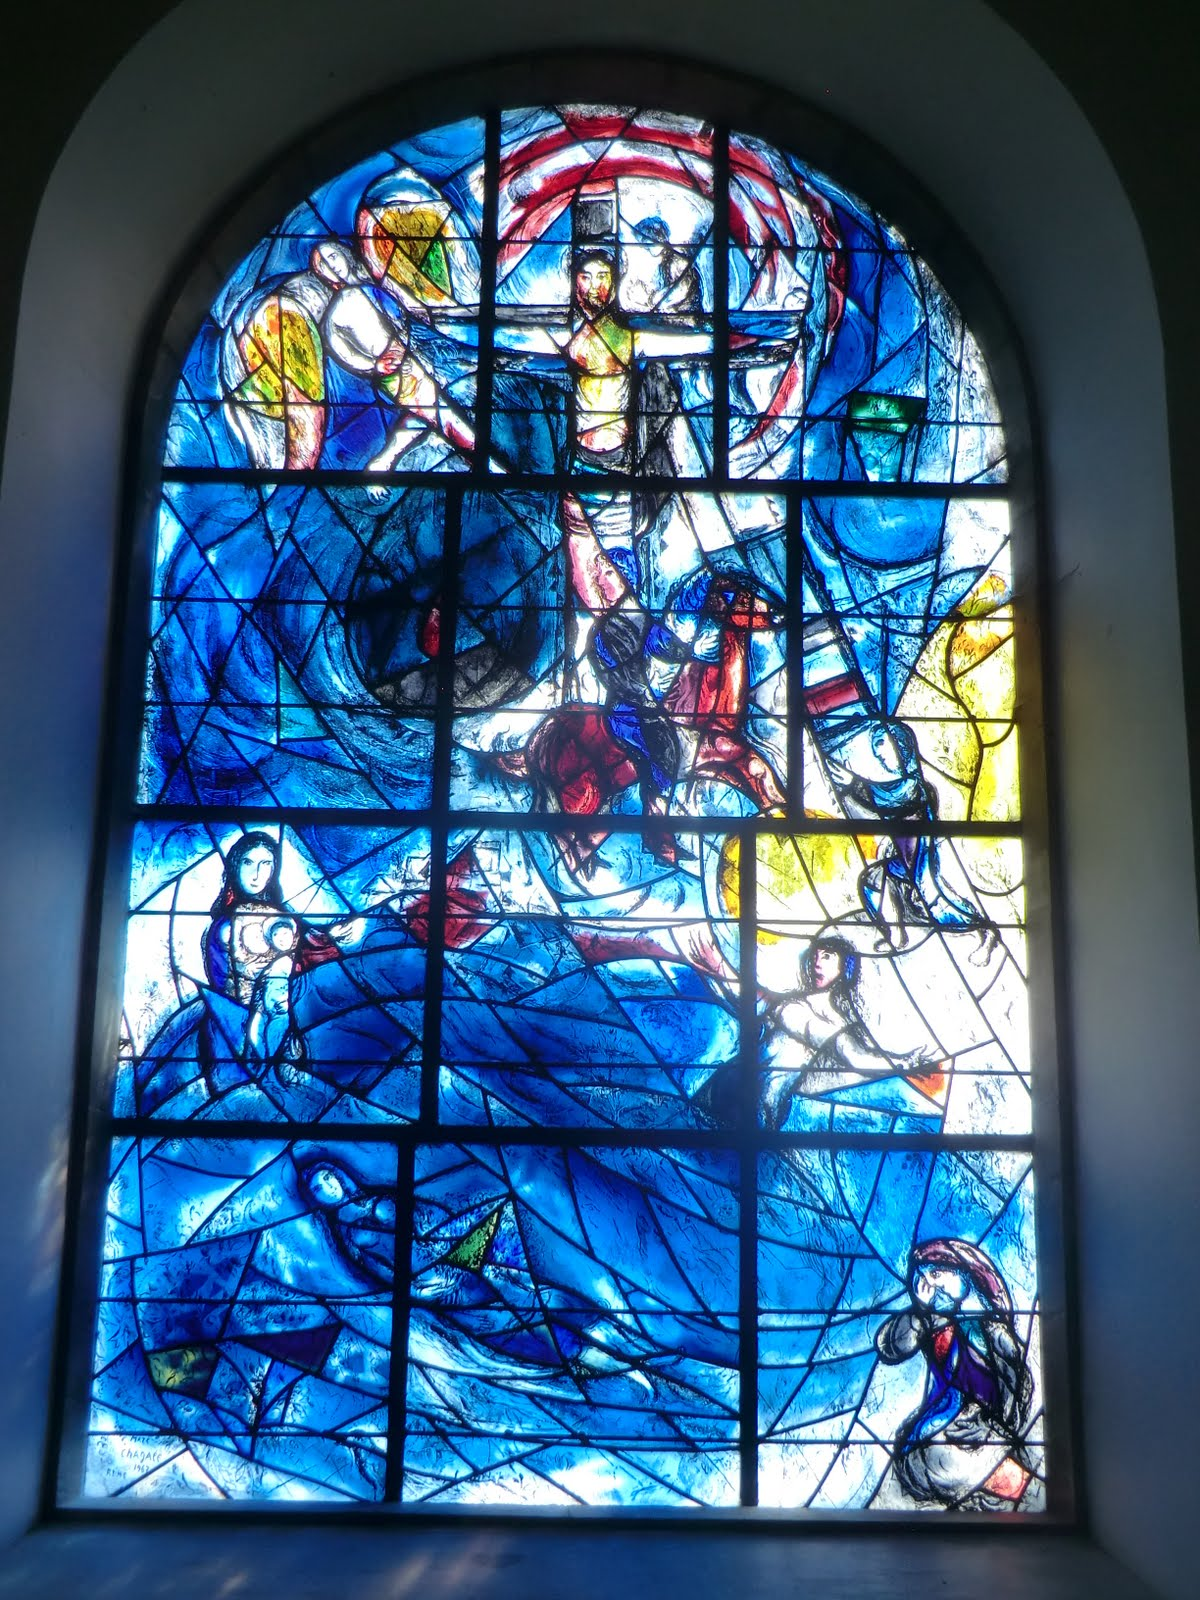 CIMG1554 Chagall window #8 (memorial window), All Saints church